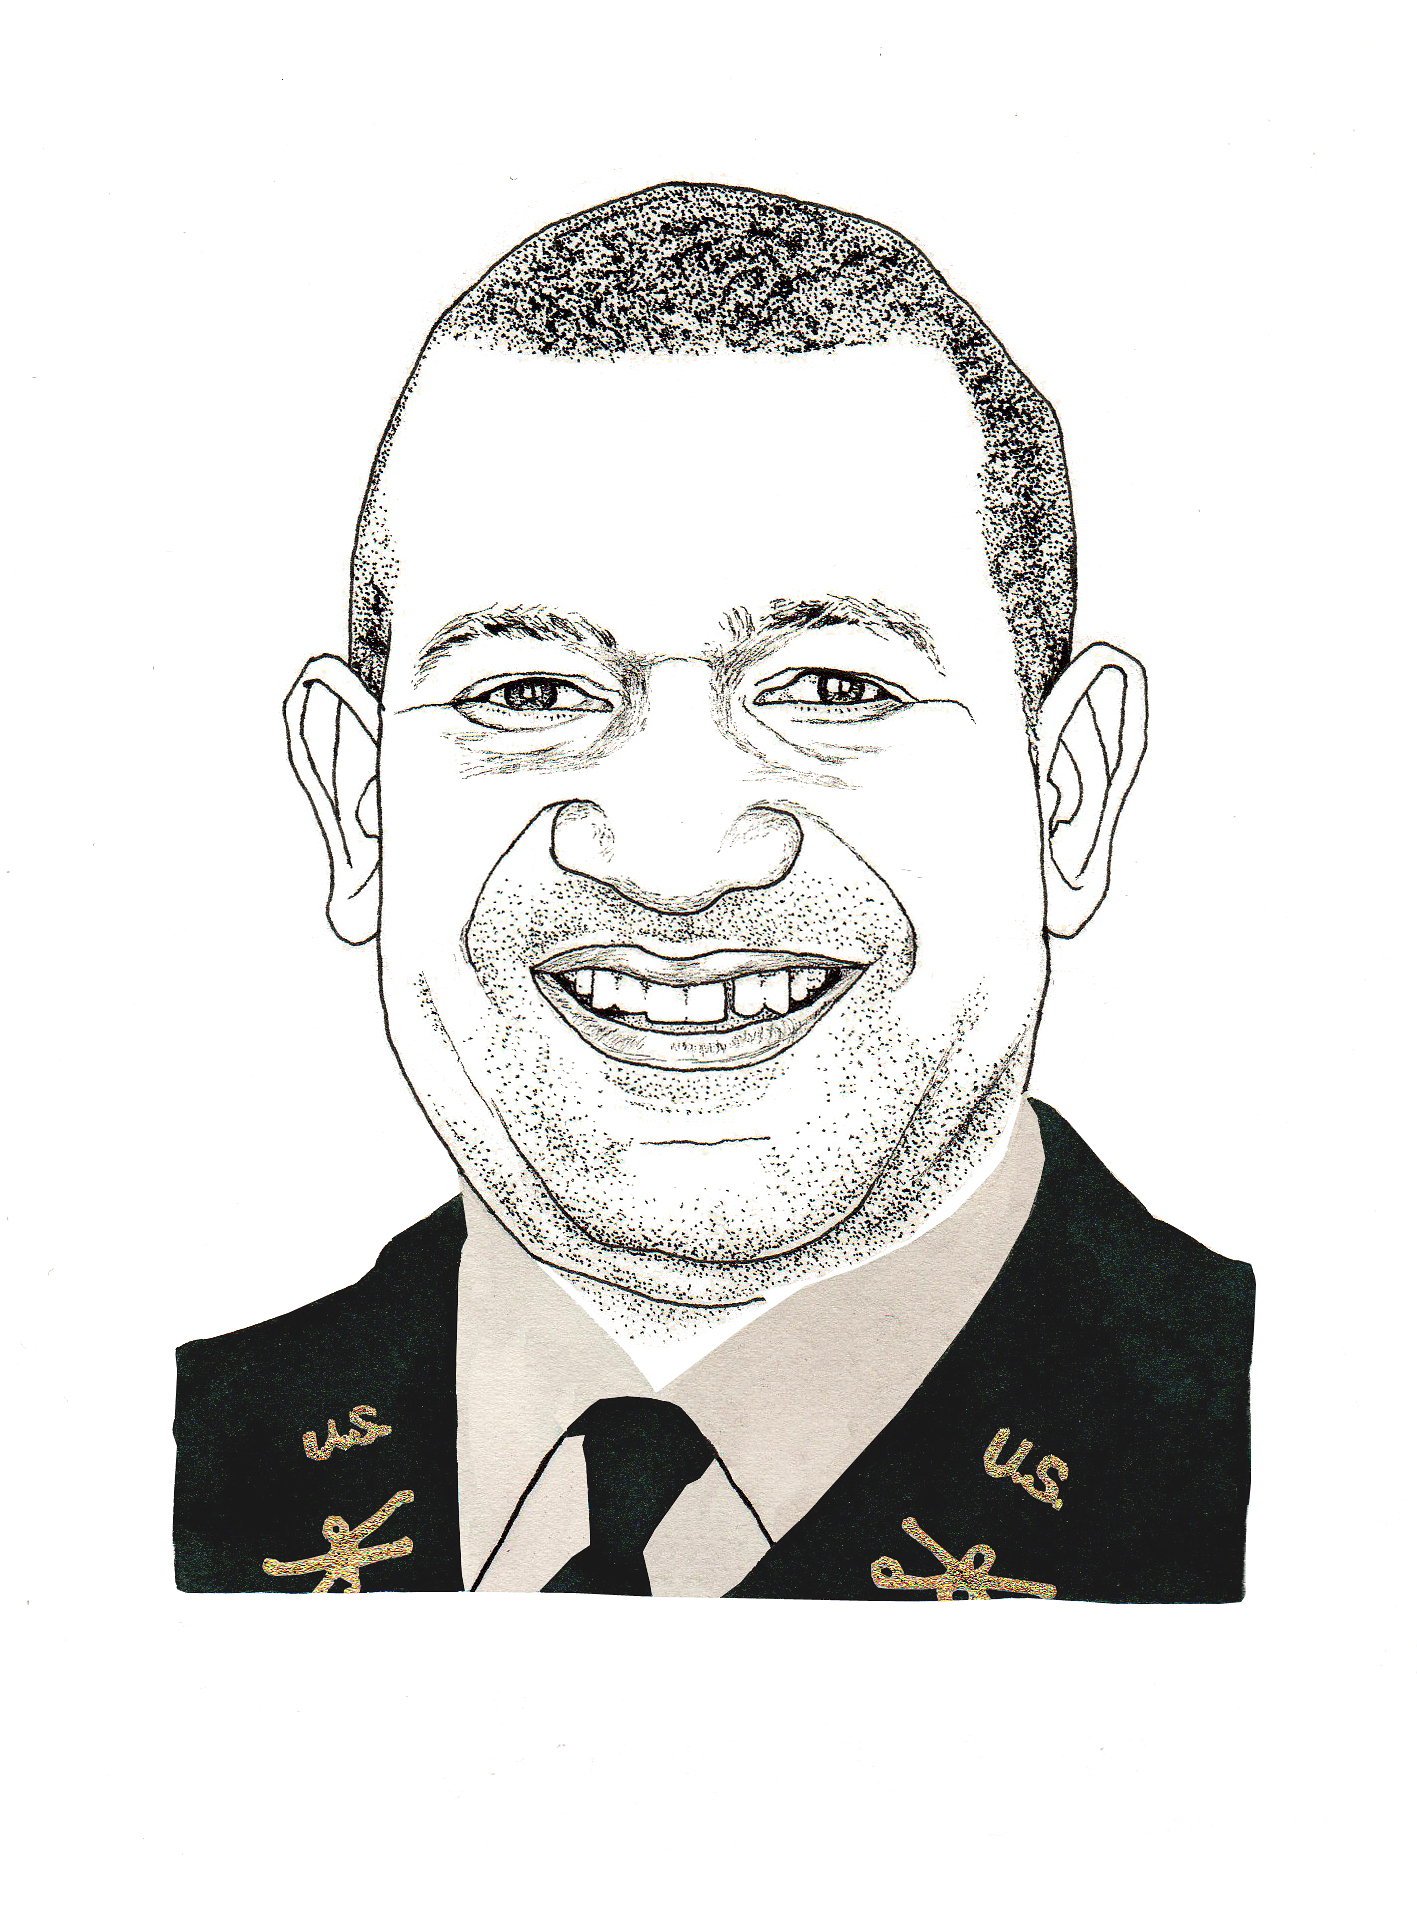 Bernard Banks (Illustration by Adam Cruft)